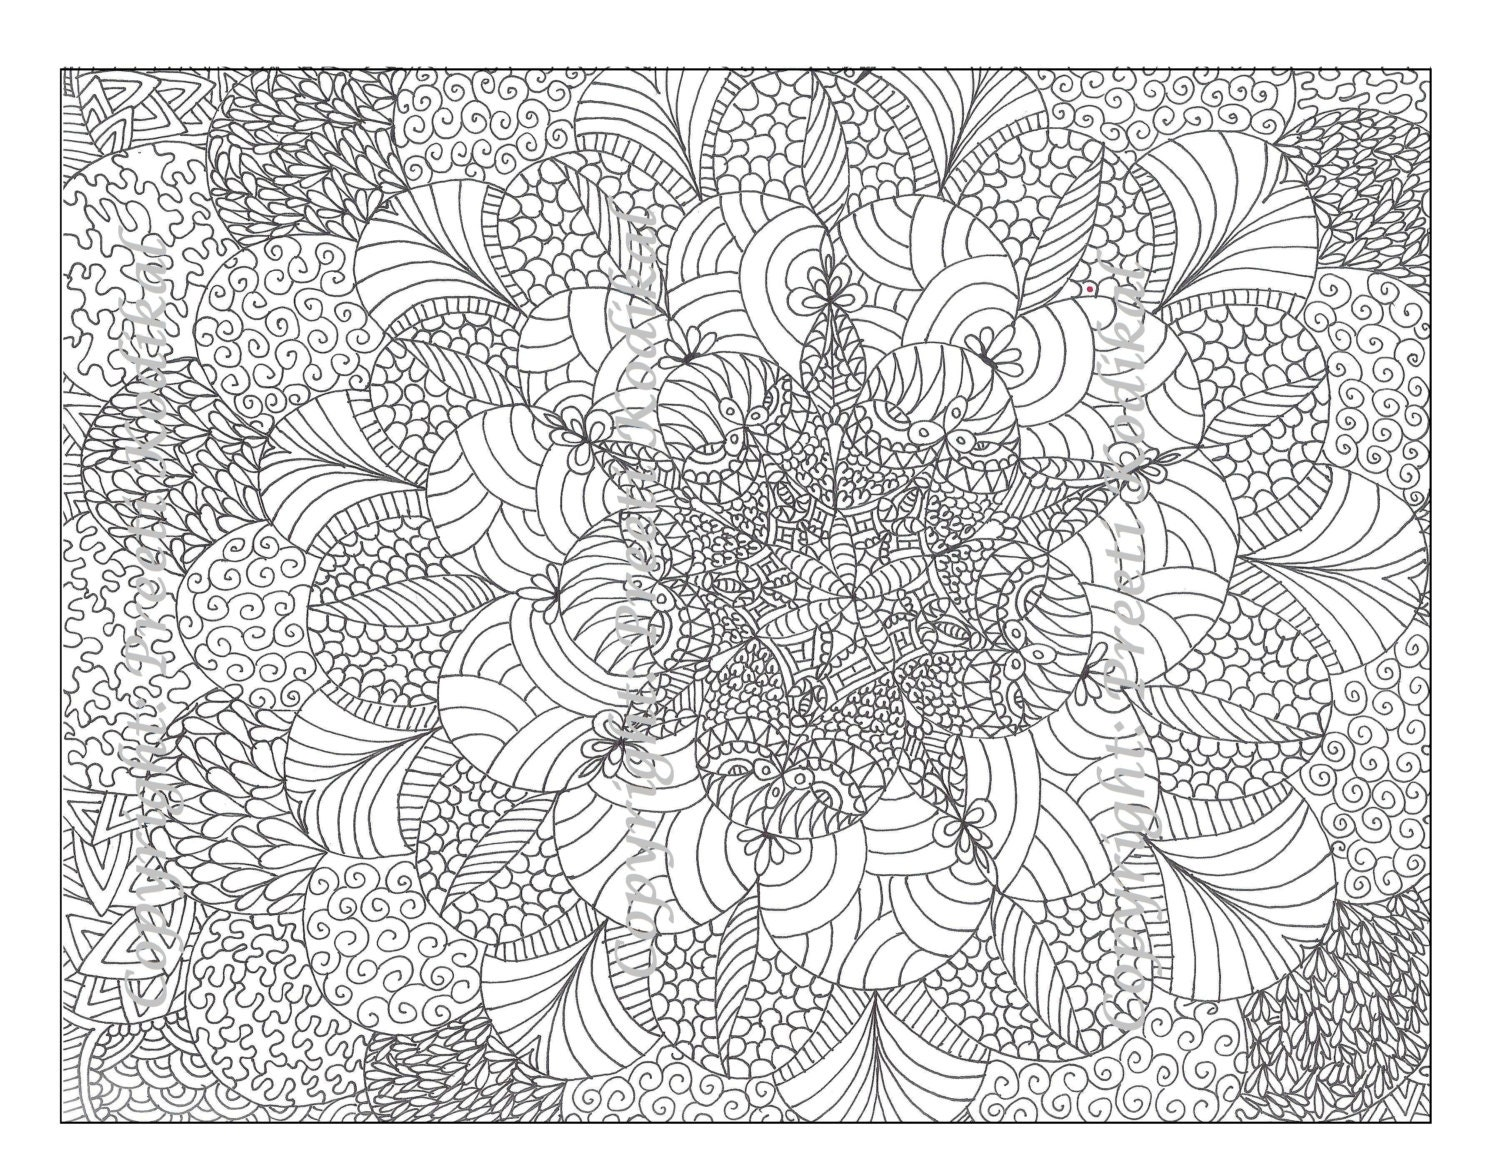 Printable Colouring Pages For Grown Ups : Free Printable Coloring Pages For Grown Ups Ecology 2015 Festival Calendar 2015